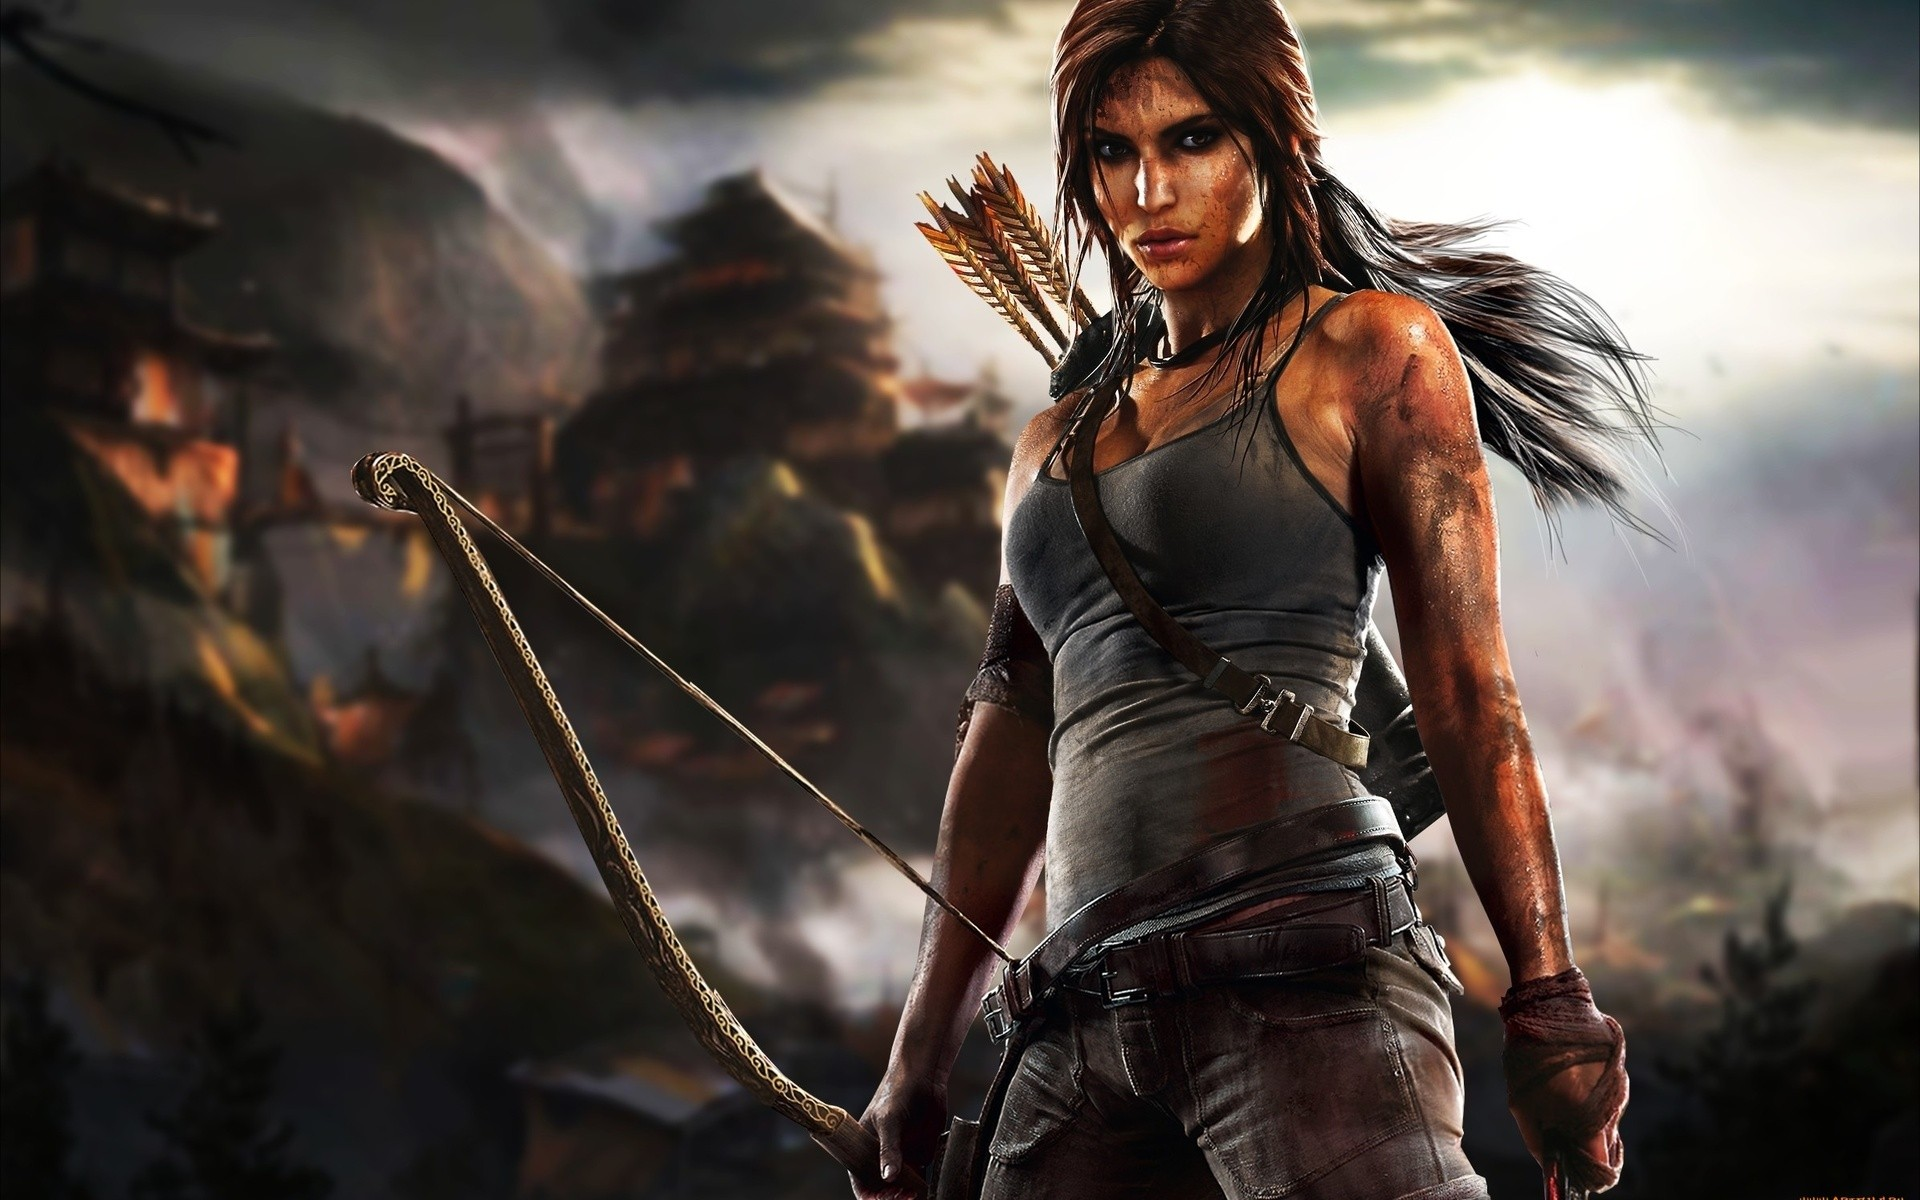 Tomb Raider Hd Wallpaper Posted By Sarah Cunningham